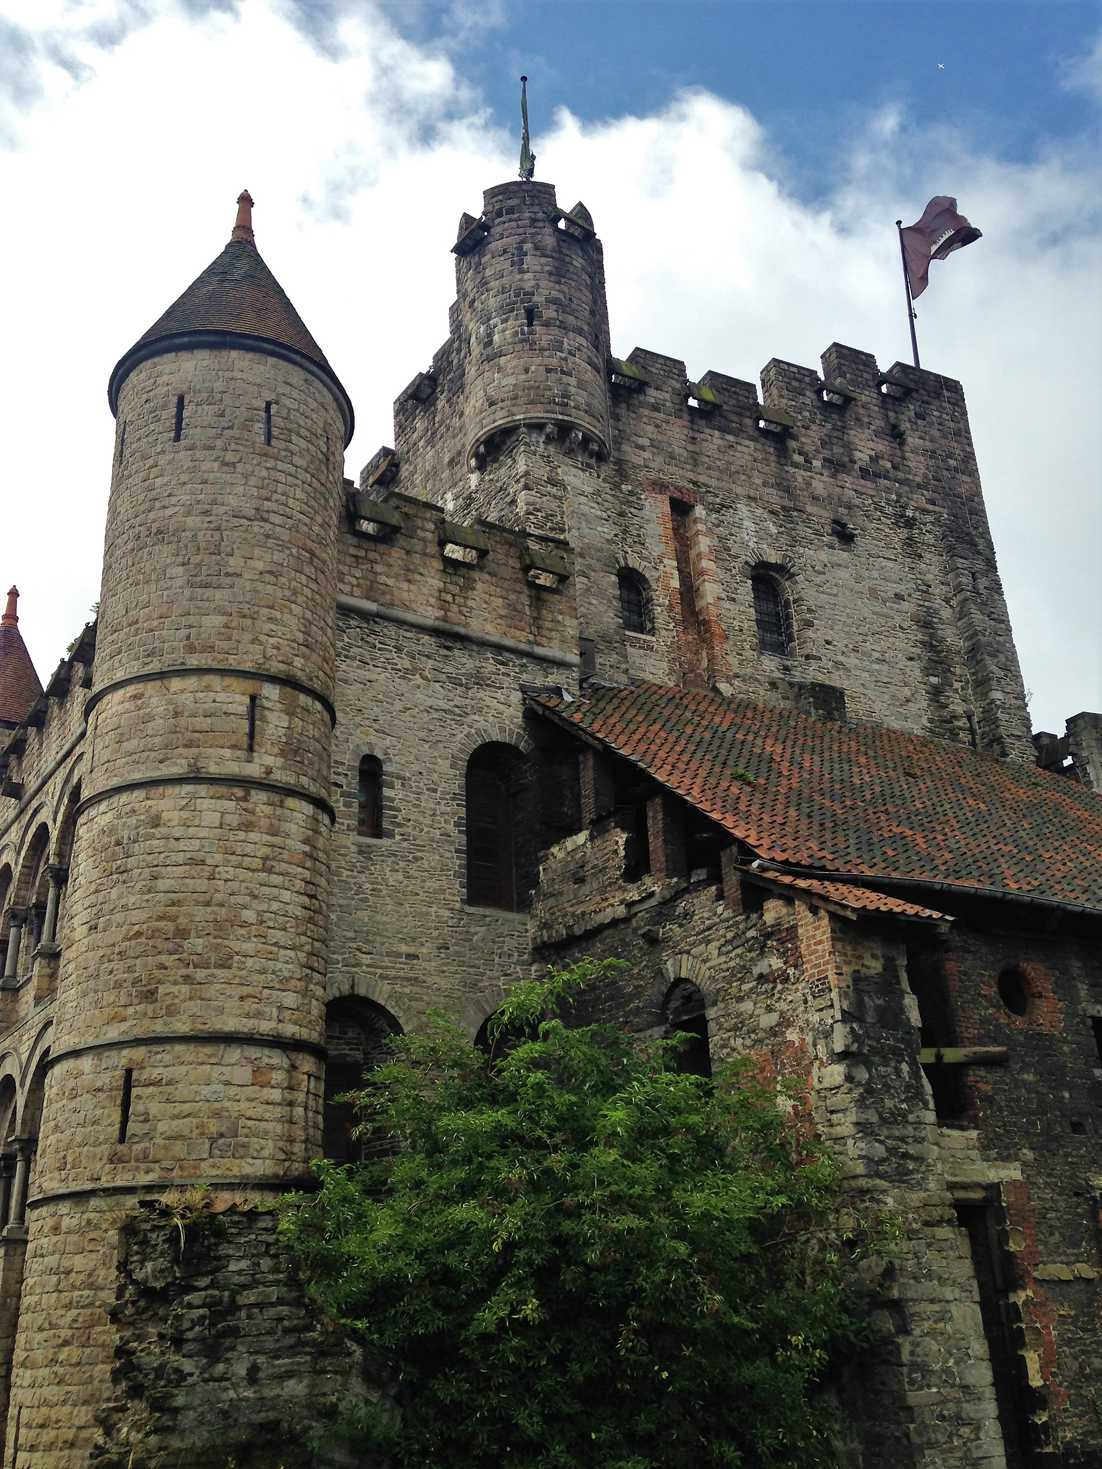 A picture of Gravensteen castle in Ghent, Belgium with flags flying.